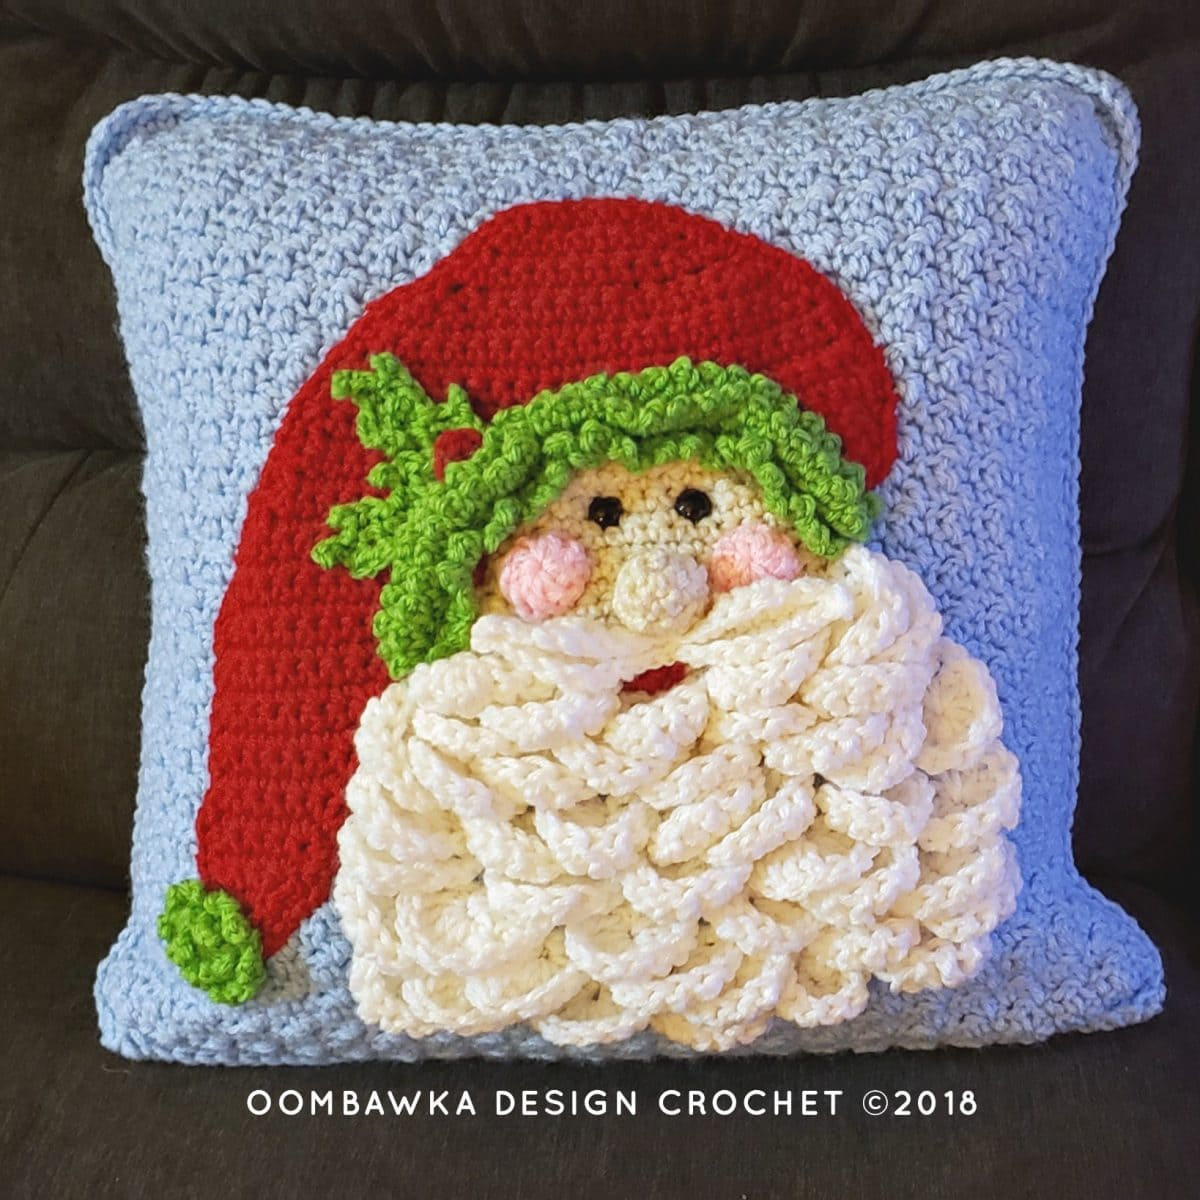 Crochet Santa Pillow. Oombawka Design Crochet Christmas 2018